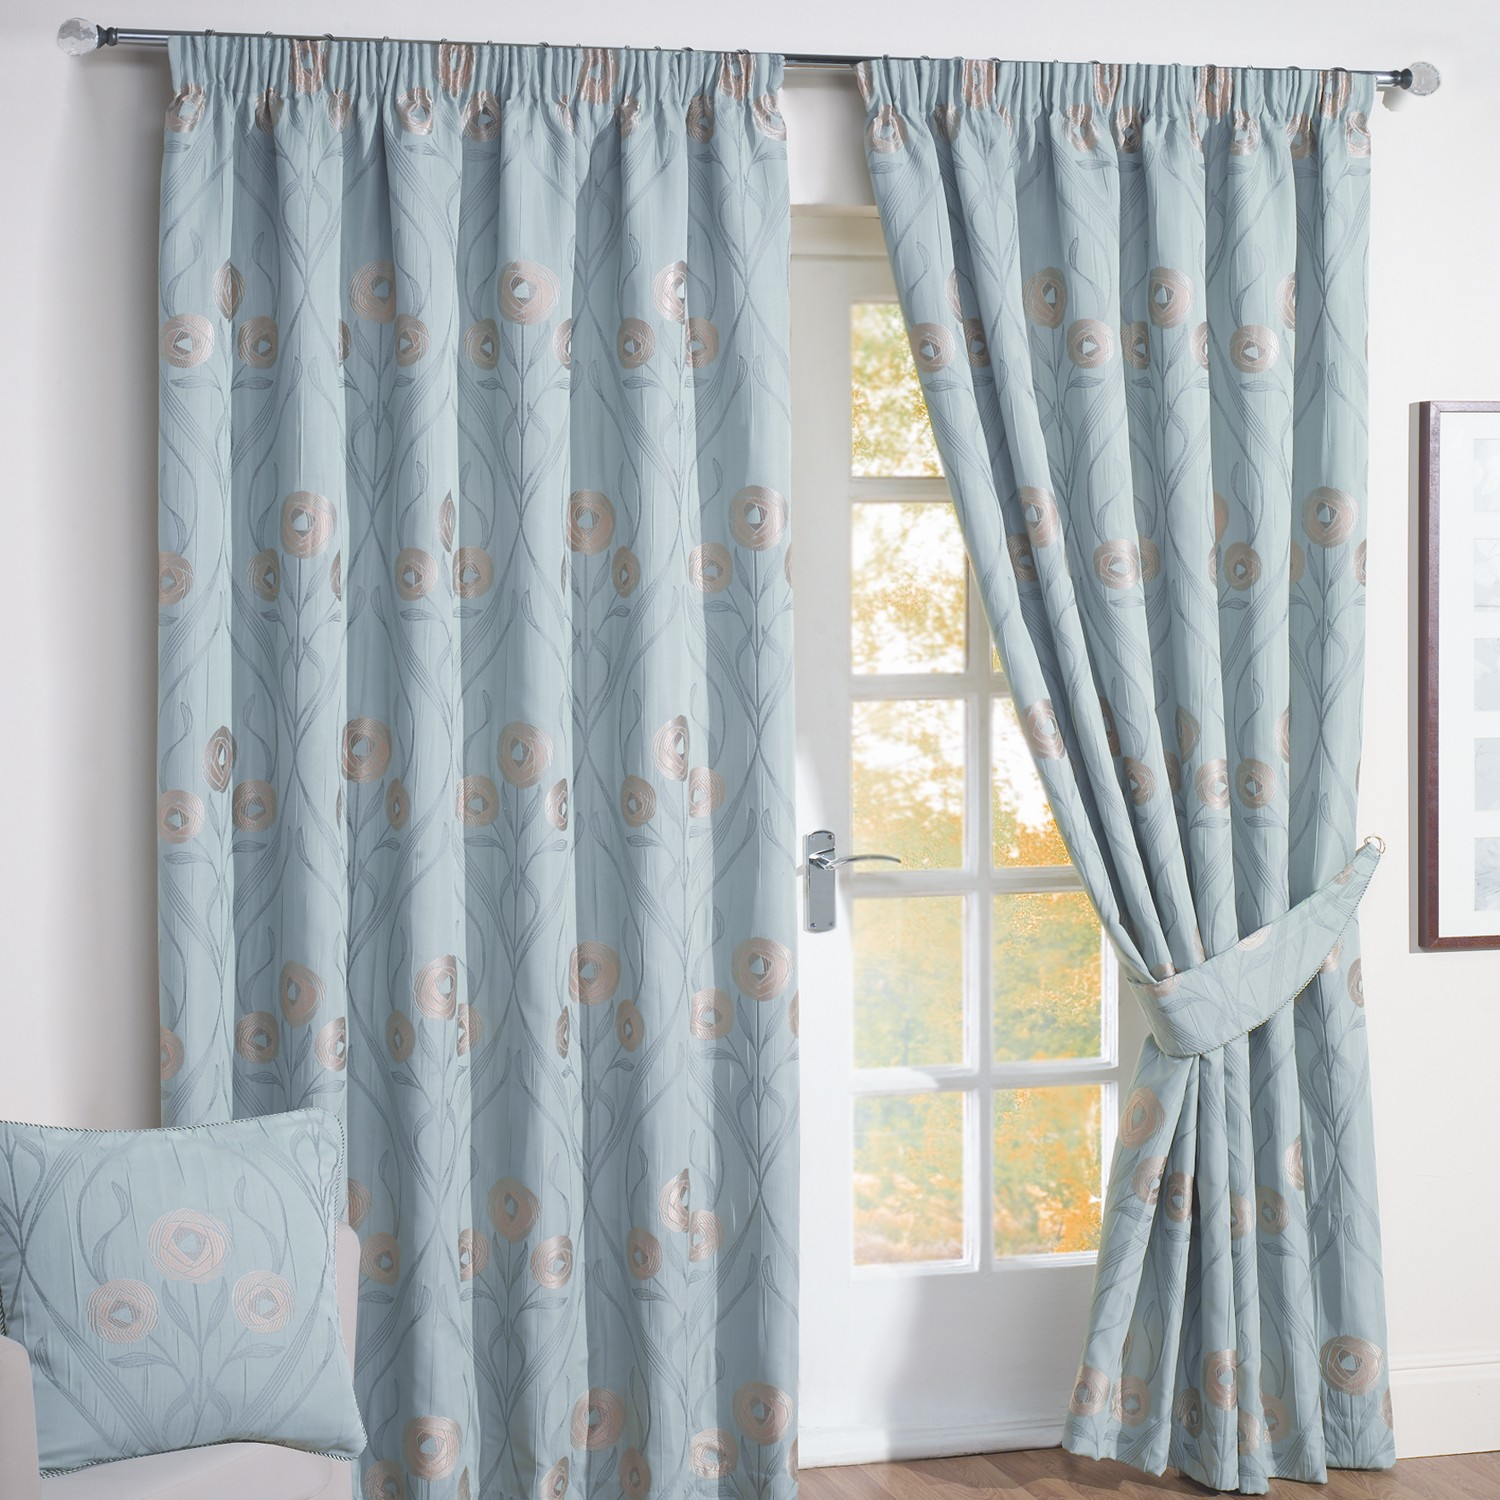 Best Montrose Duck Egg Blue Floral Jacquard Lined Curtains (Pair) duck egg blue curtains